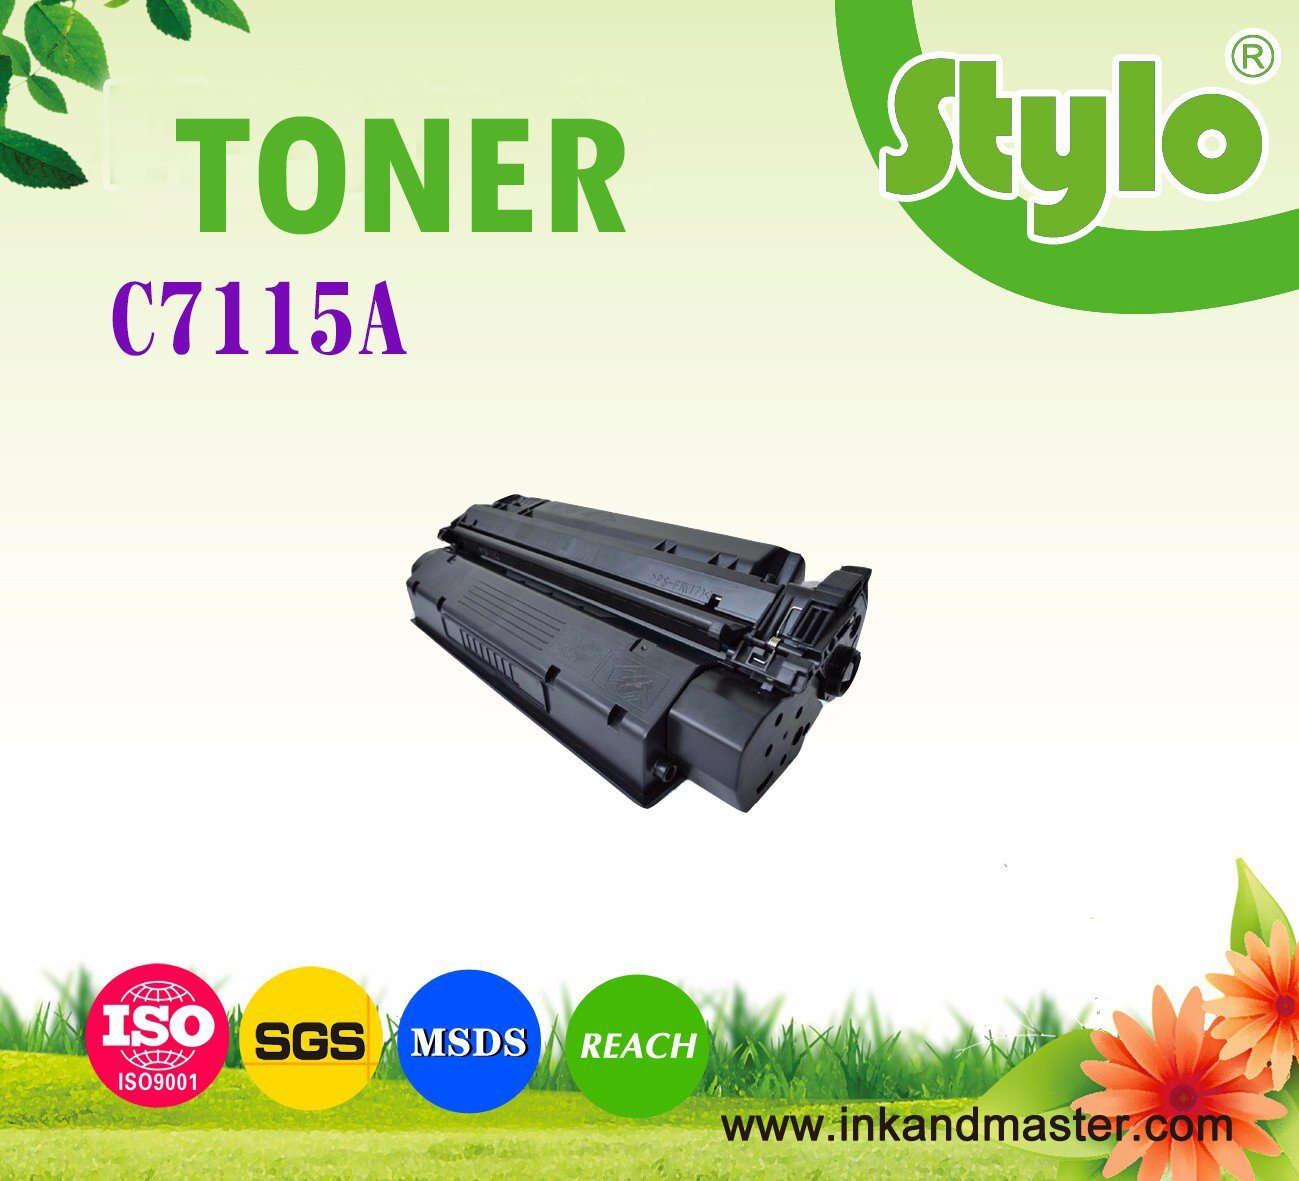 C7115A Laser Printer Toner Cartridge for Use in HP Laserjet 1000/1220/3330/3300 Printer